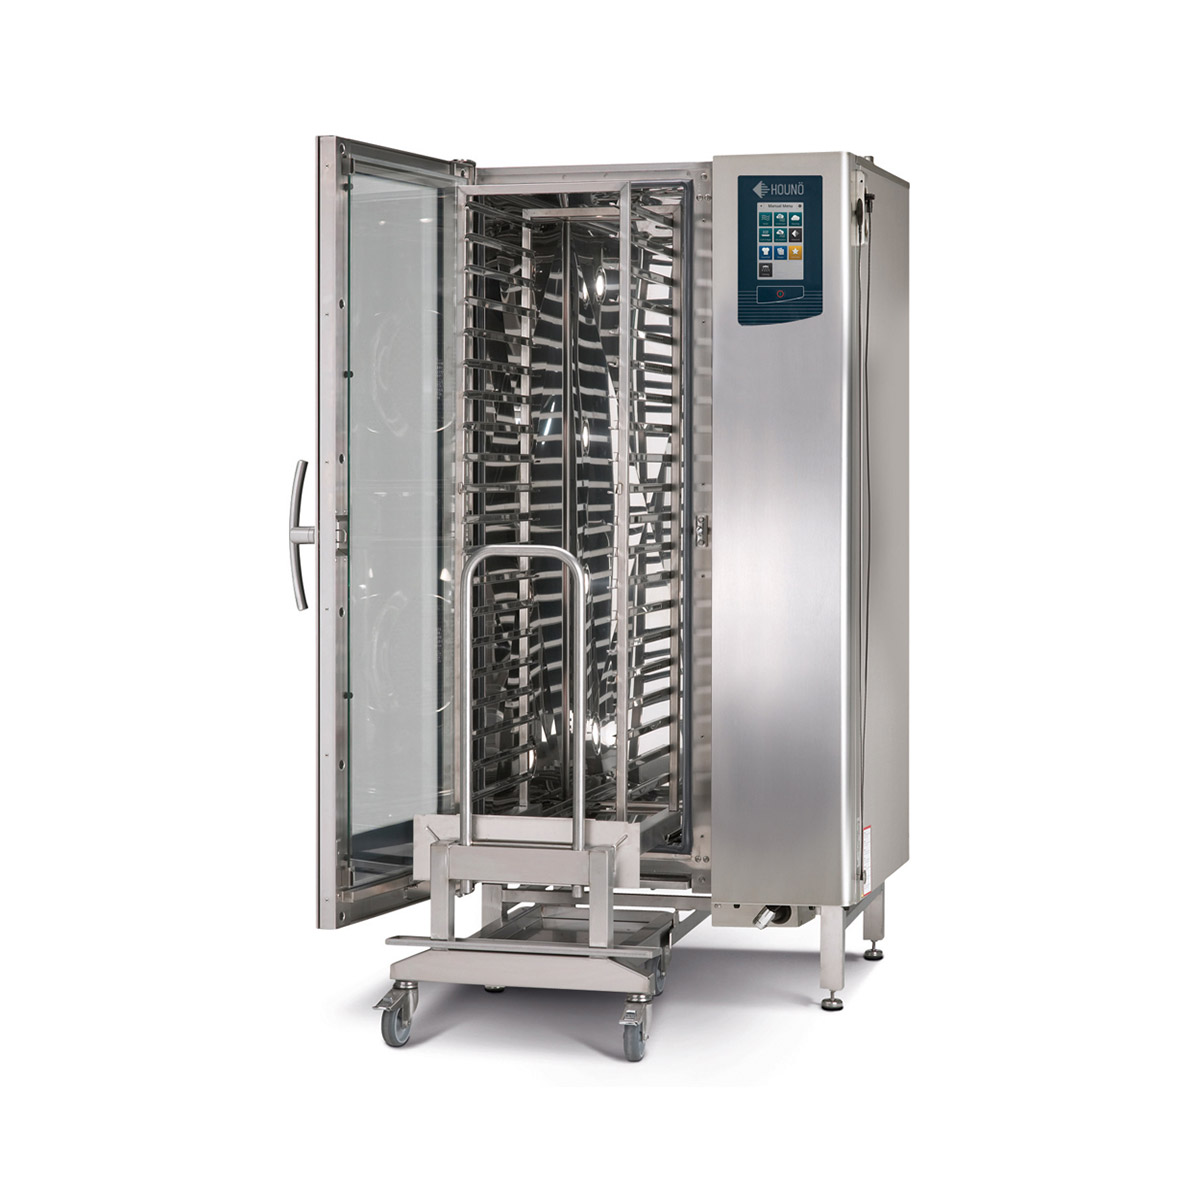 Houno K & KPE 1.20 Roll-In Combi Oven Electric 20 Tray Oven – 4 Year Warranty